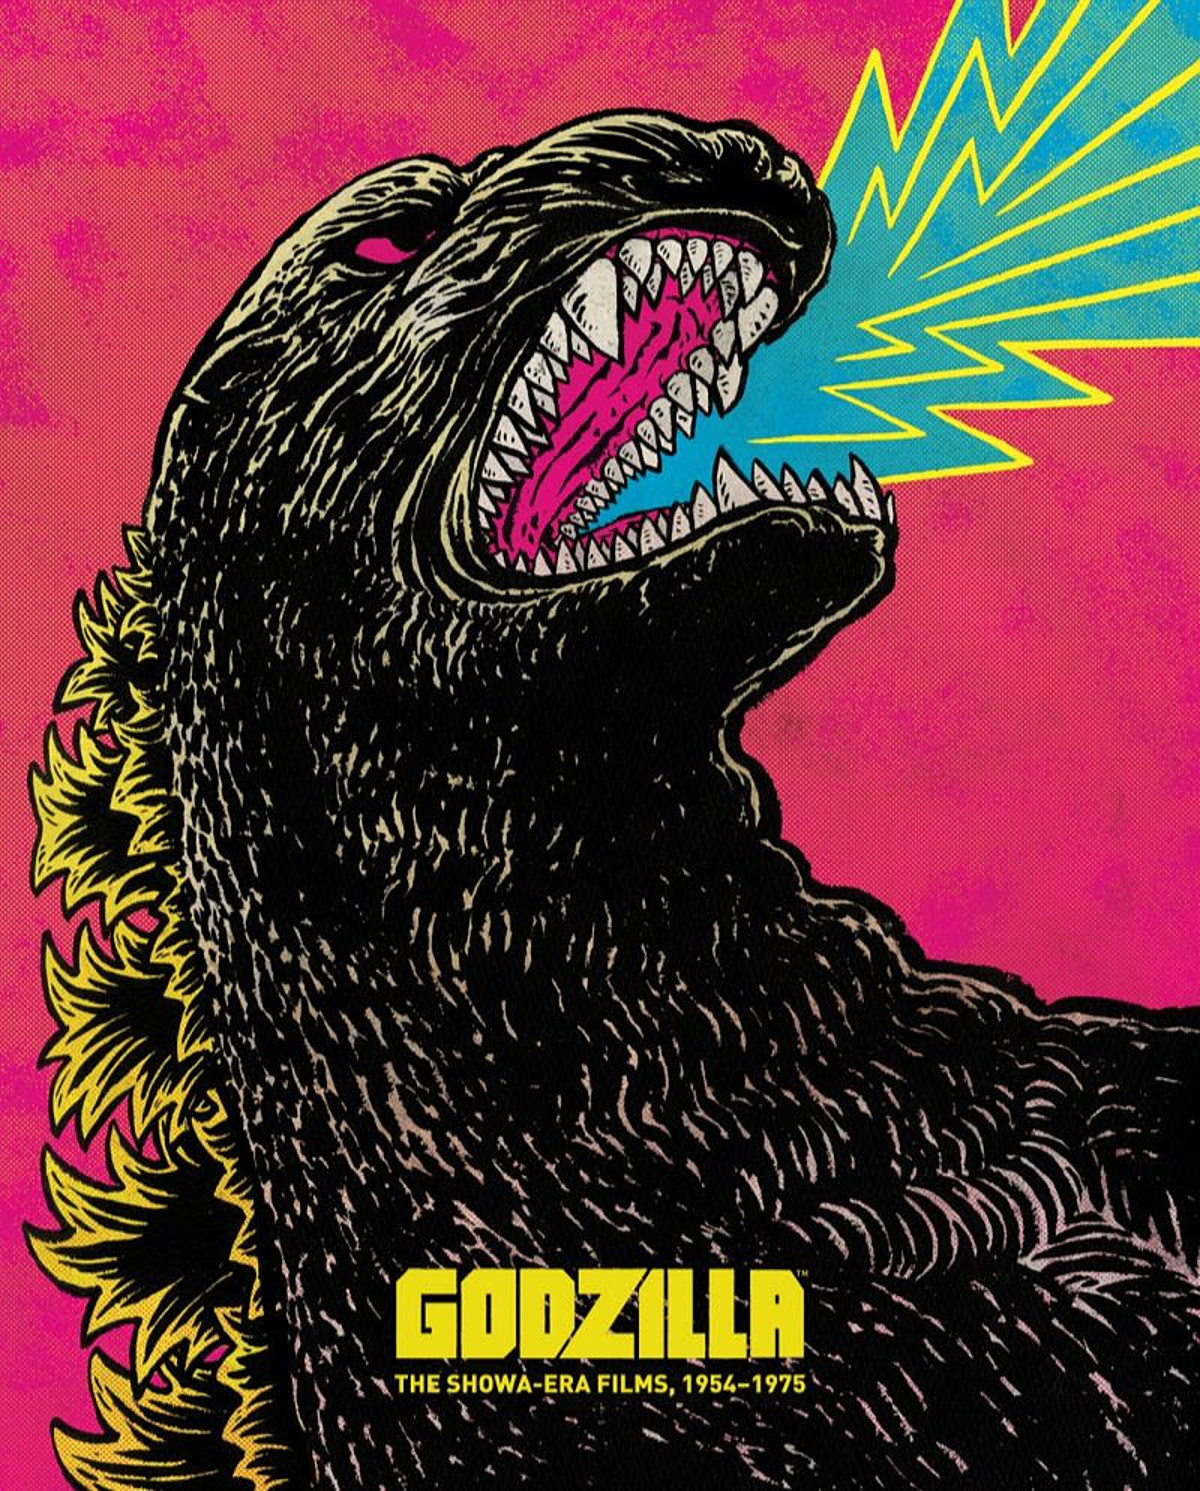 Criterion Collection releasing Godzilla box set as its 1000th release